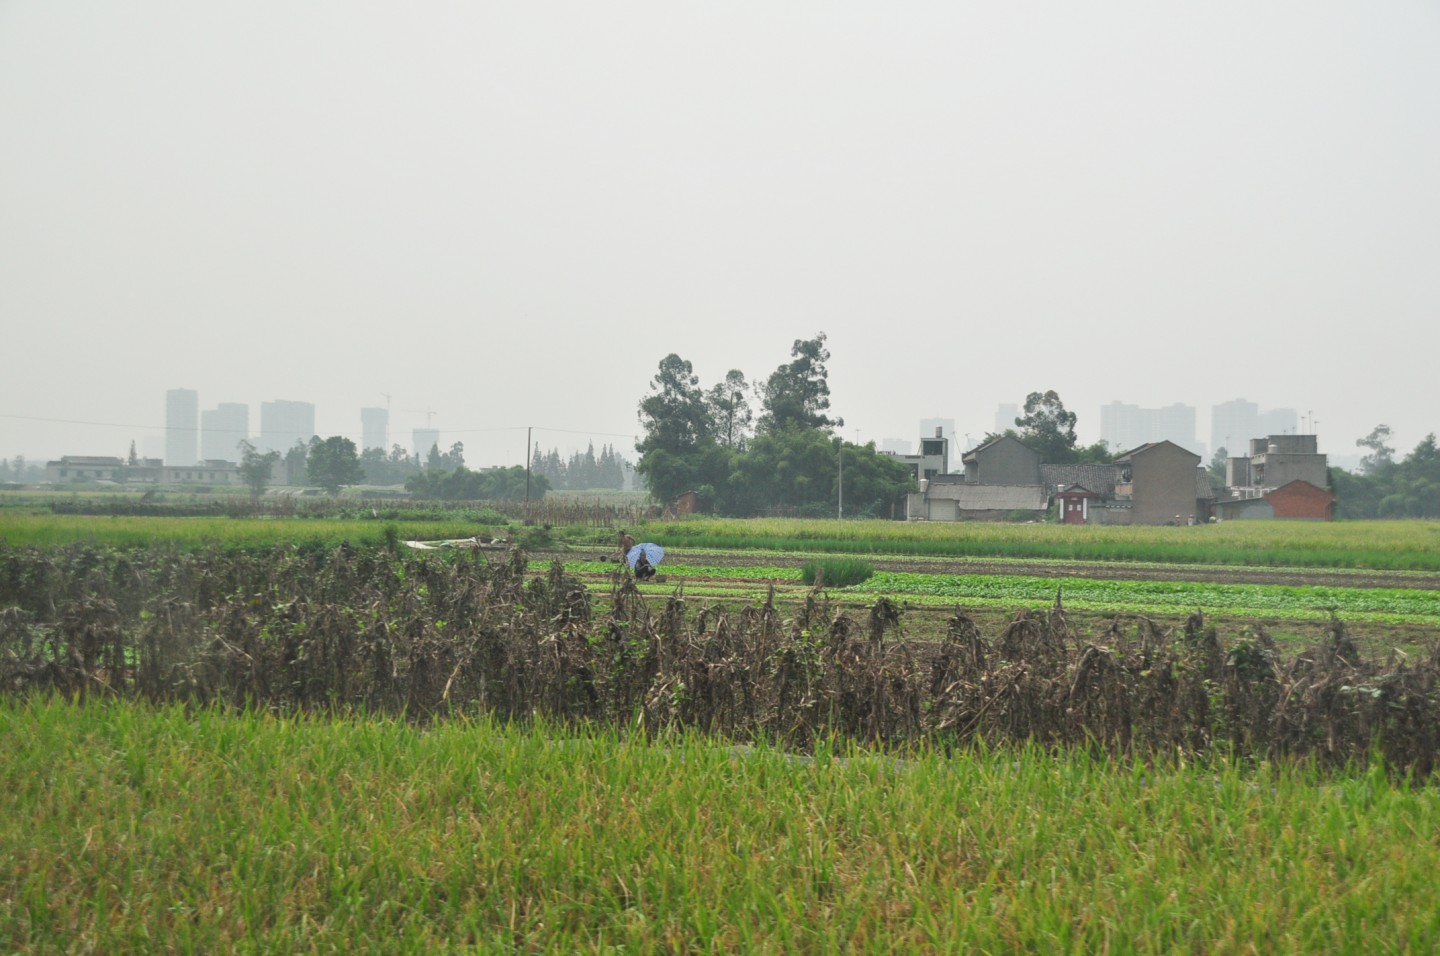 Following economic reforms in rural areas, farmers could now cultivate their private plot of land. (SPH)